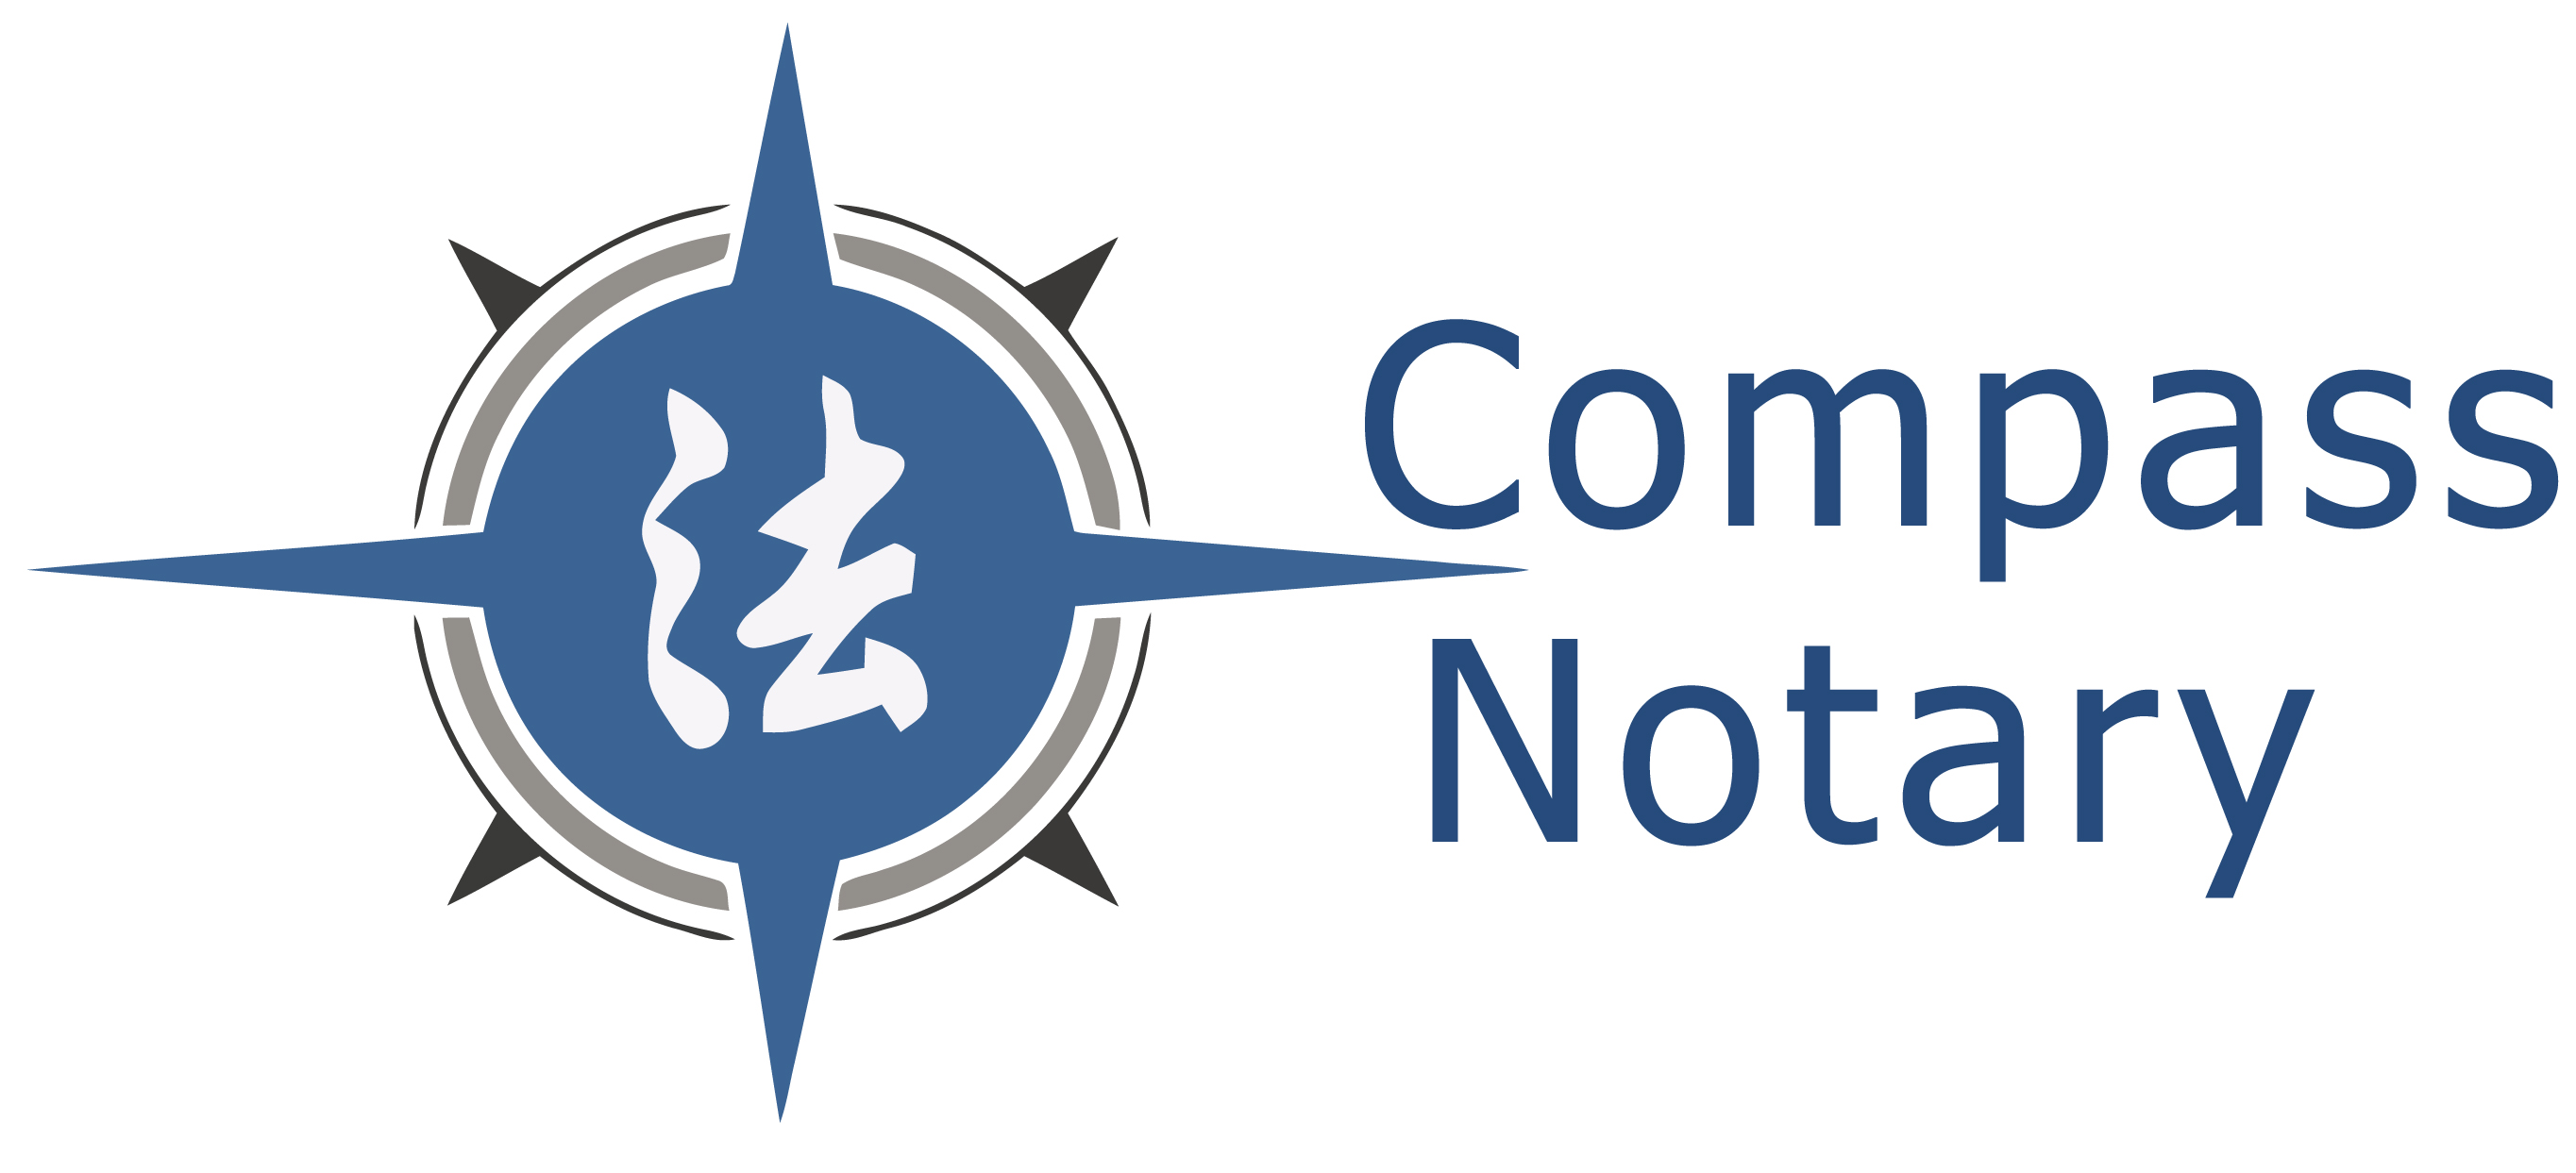 Compass Notary